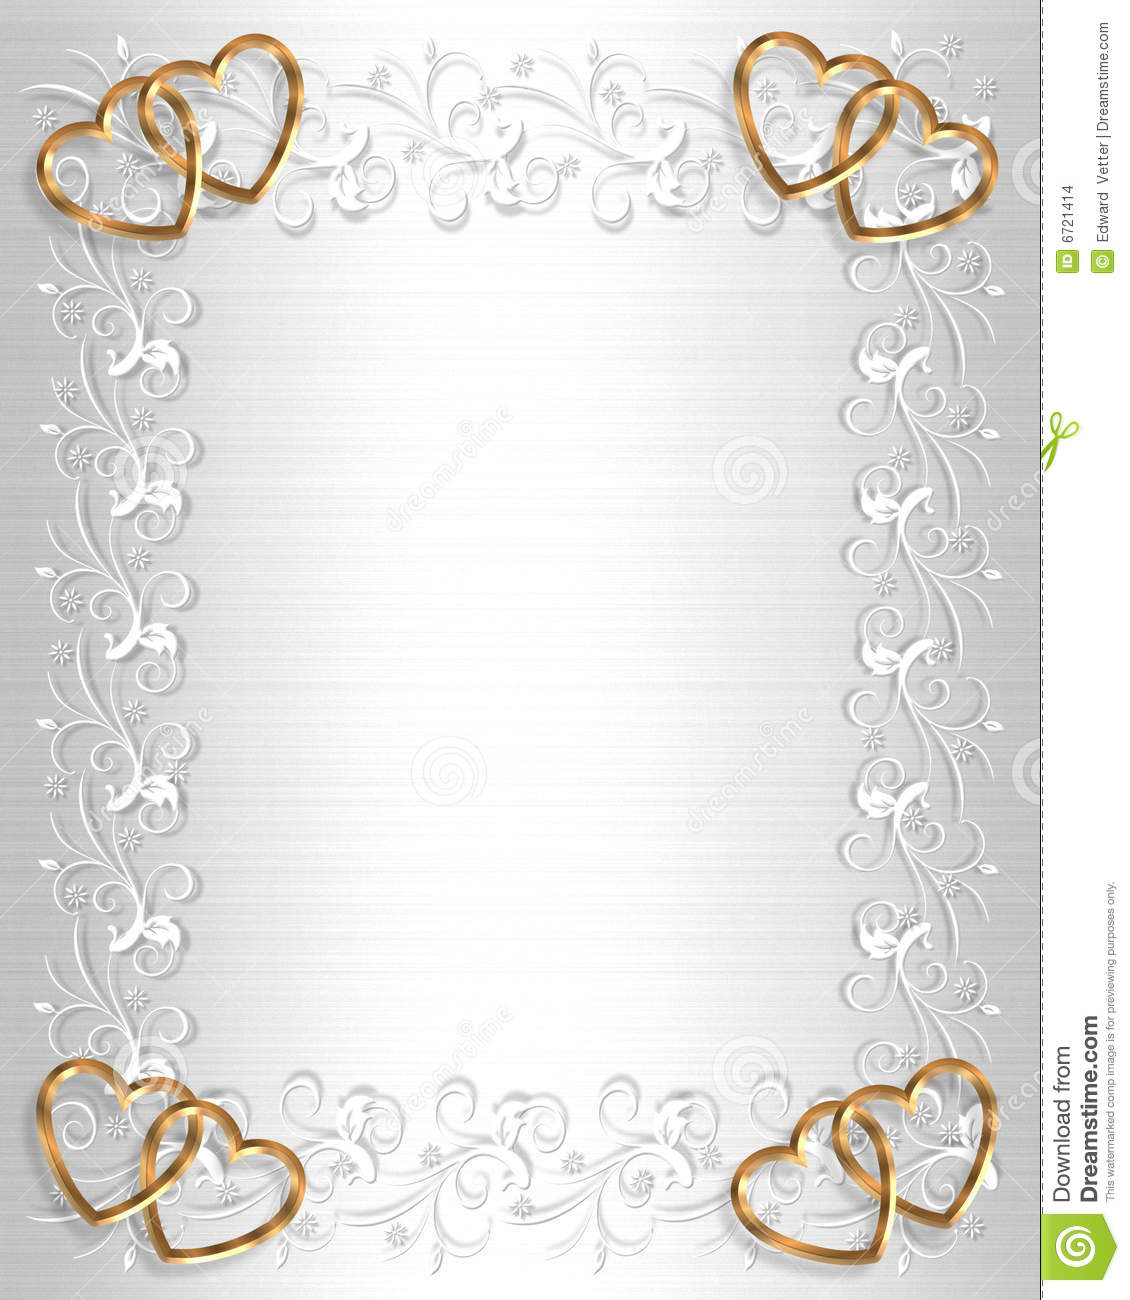 wedding invitation borders